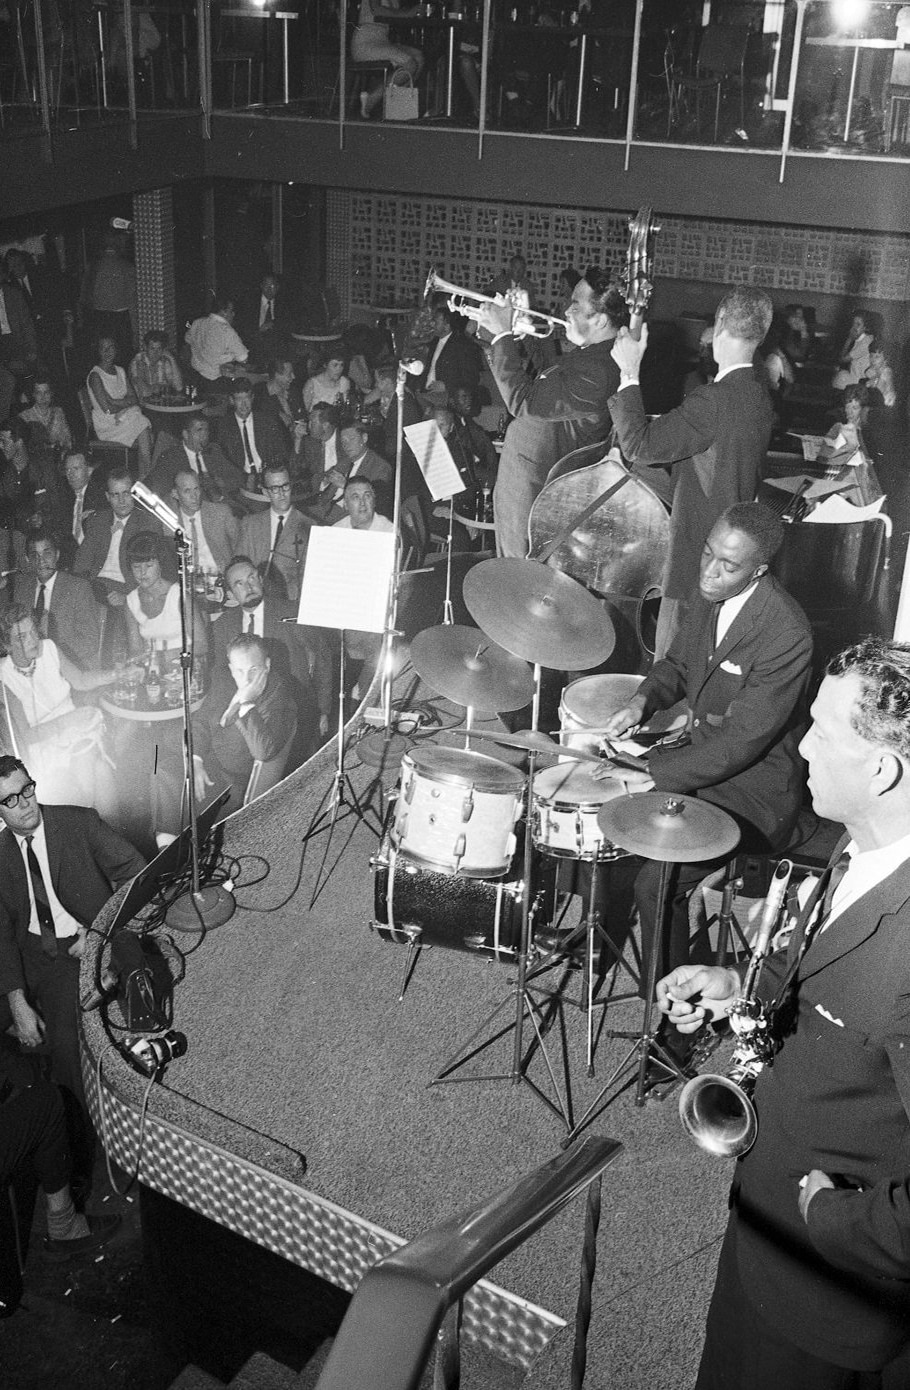 A black and white photograph showing the interior of a packed music venue. On stage a group of musicians play, including a trumpeter, a bass player, and a drummer. The audience, seated below them and on a higher second level, look on.